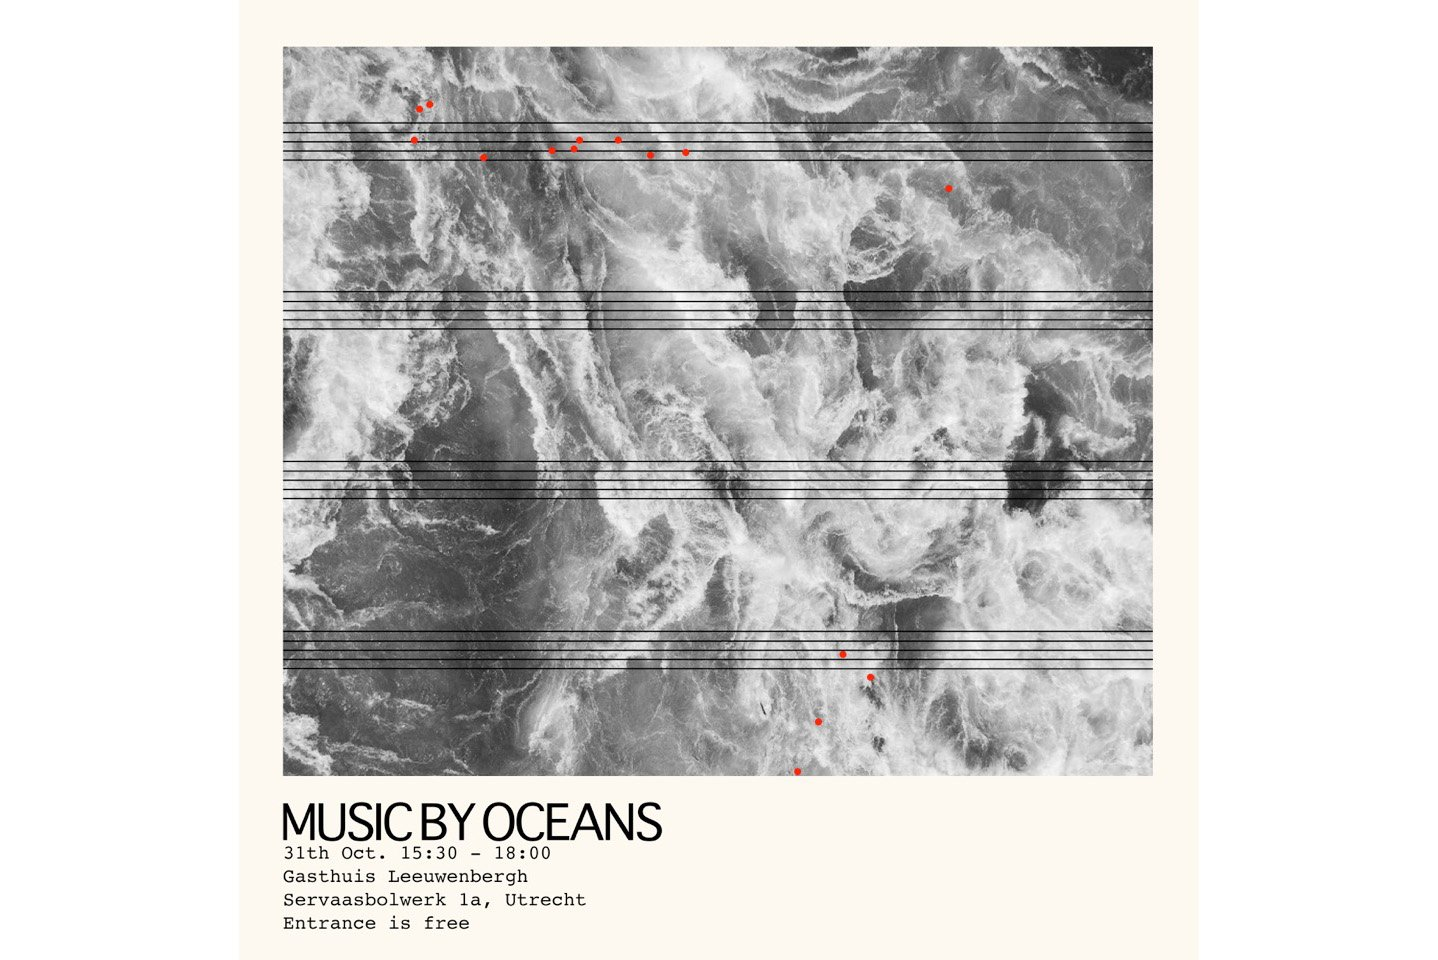 Music by Oceans